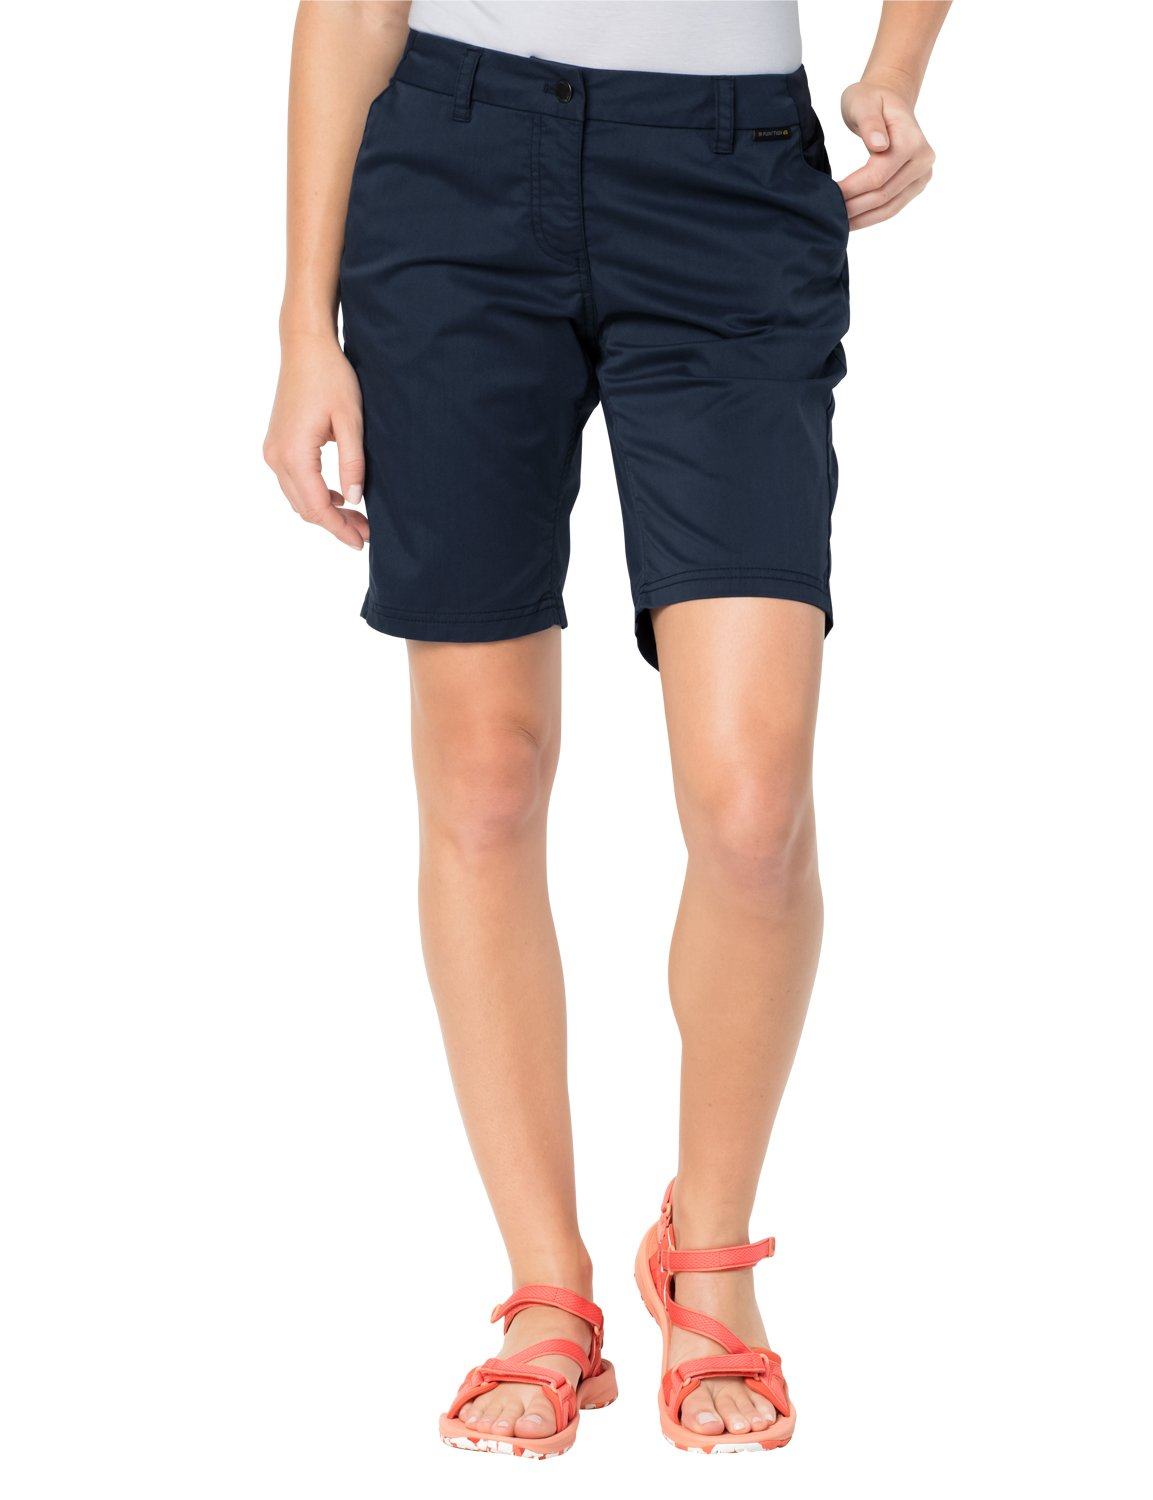 Jack Wolfskin Women's Belden Shorts, Midnight Blue, 42 (US 14) by Jack Wolfskin